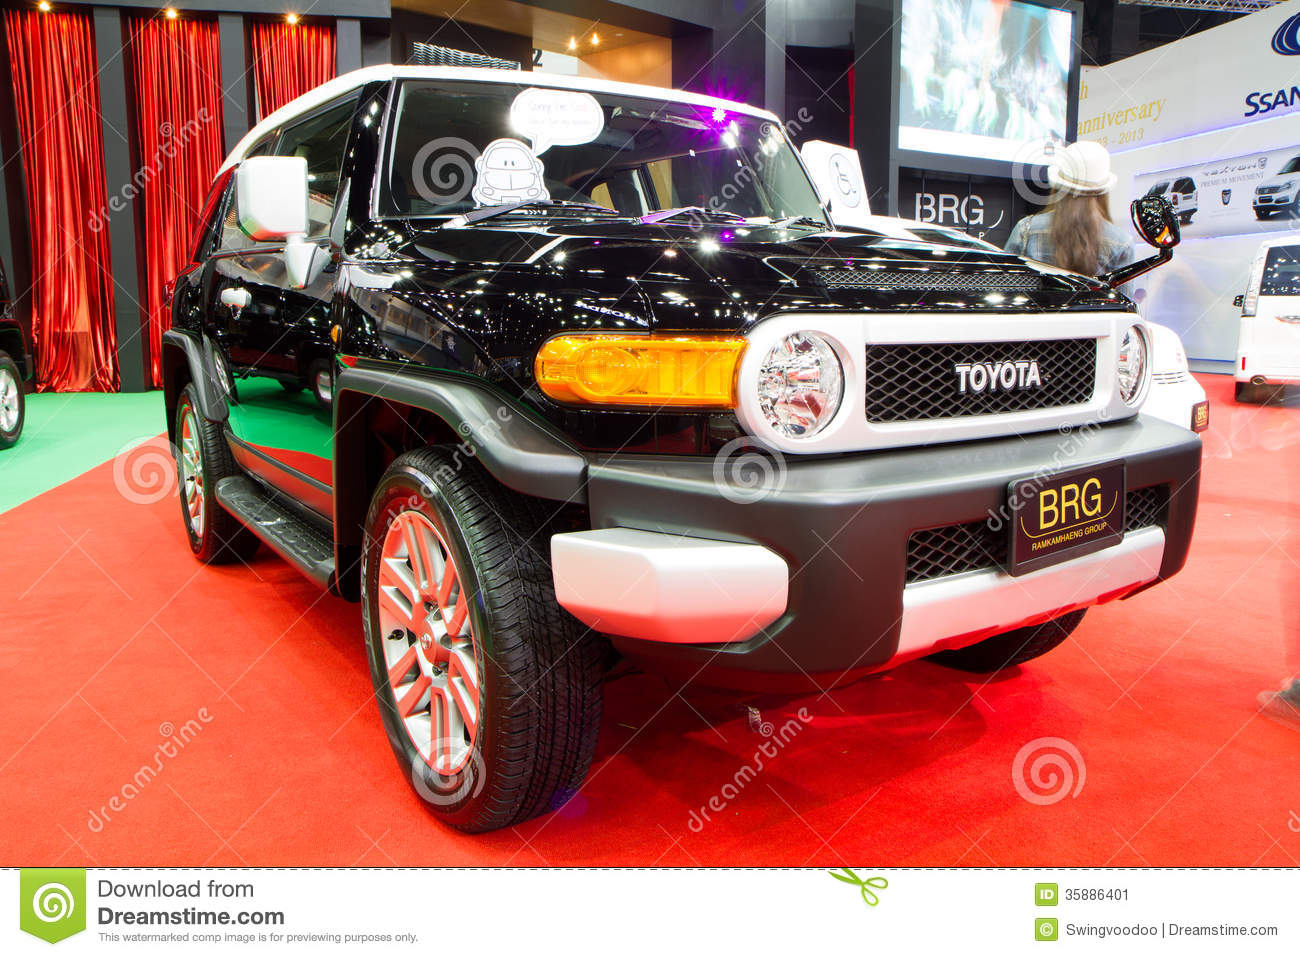 Toyota Fj Cruiser 4x4 Car On Thailand International Motor